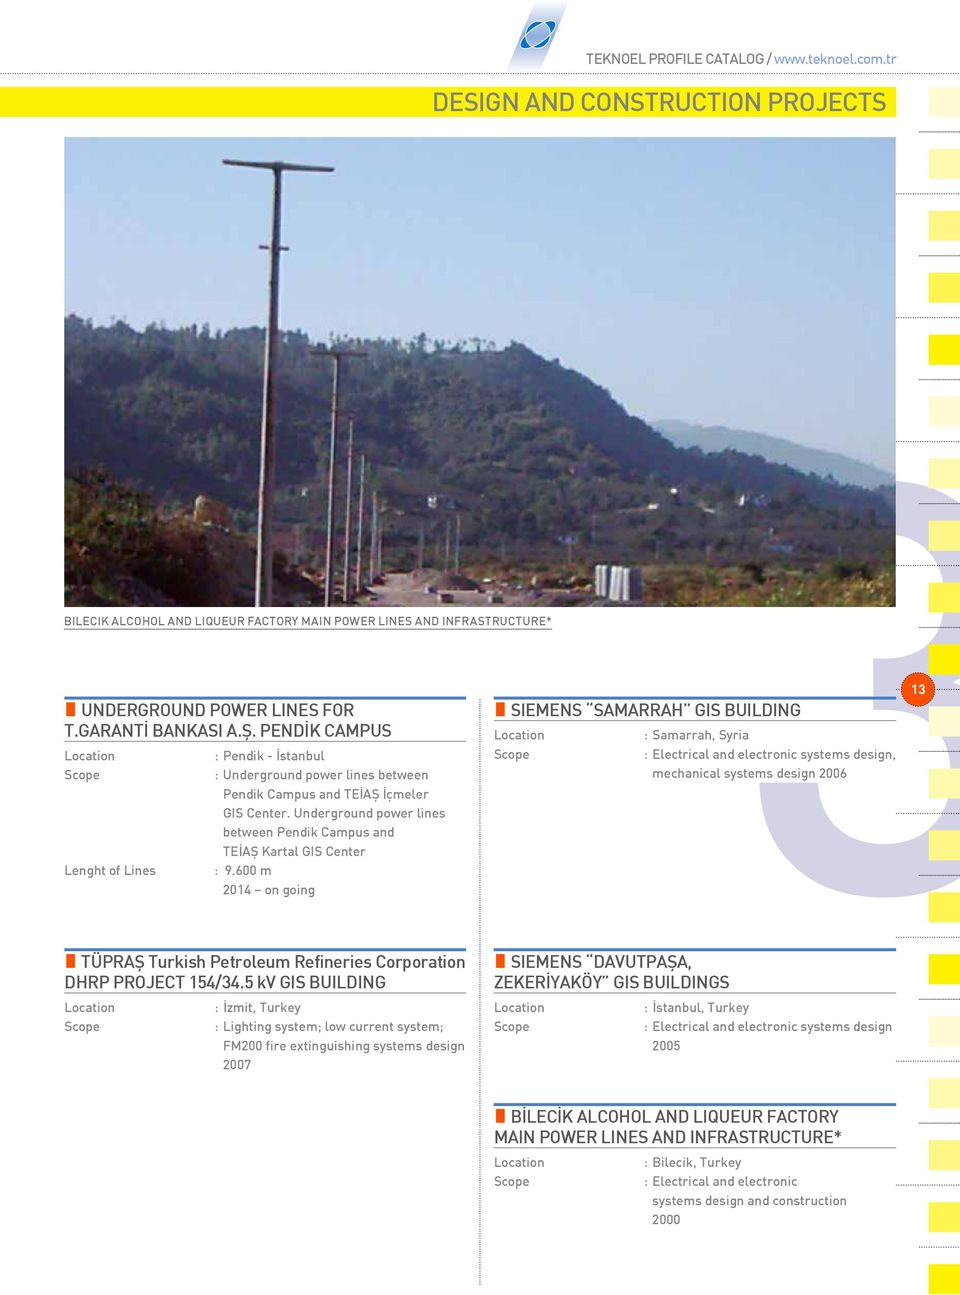 Underground power lines between Pendik Campus and TEİAŞ Kartal GIS Center : 9.